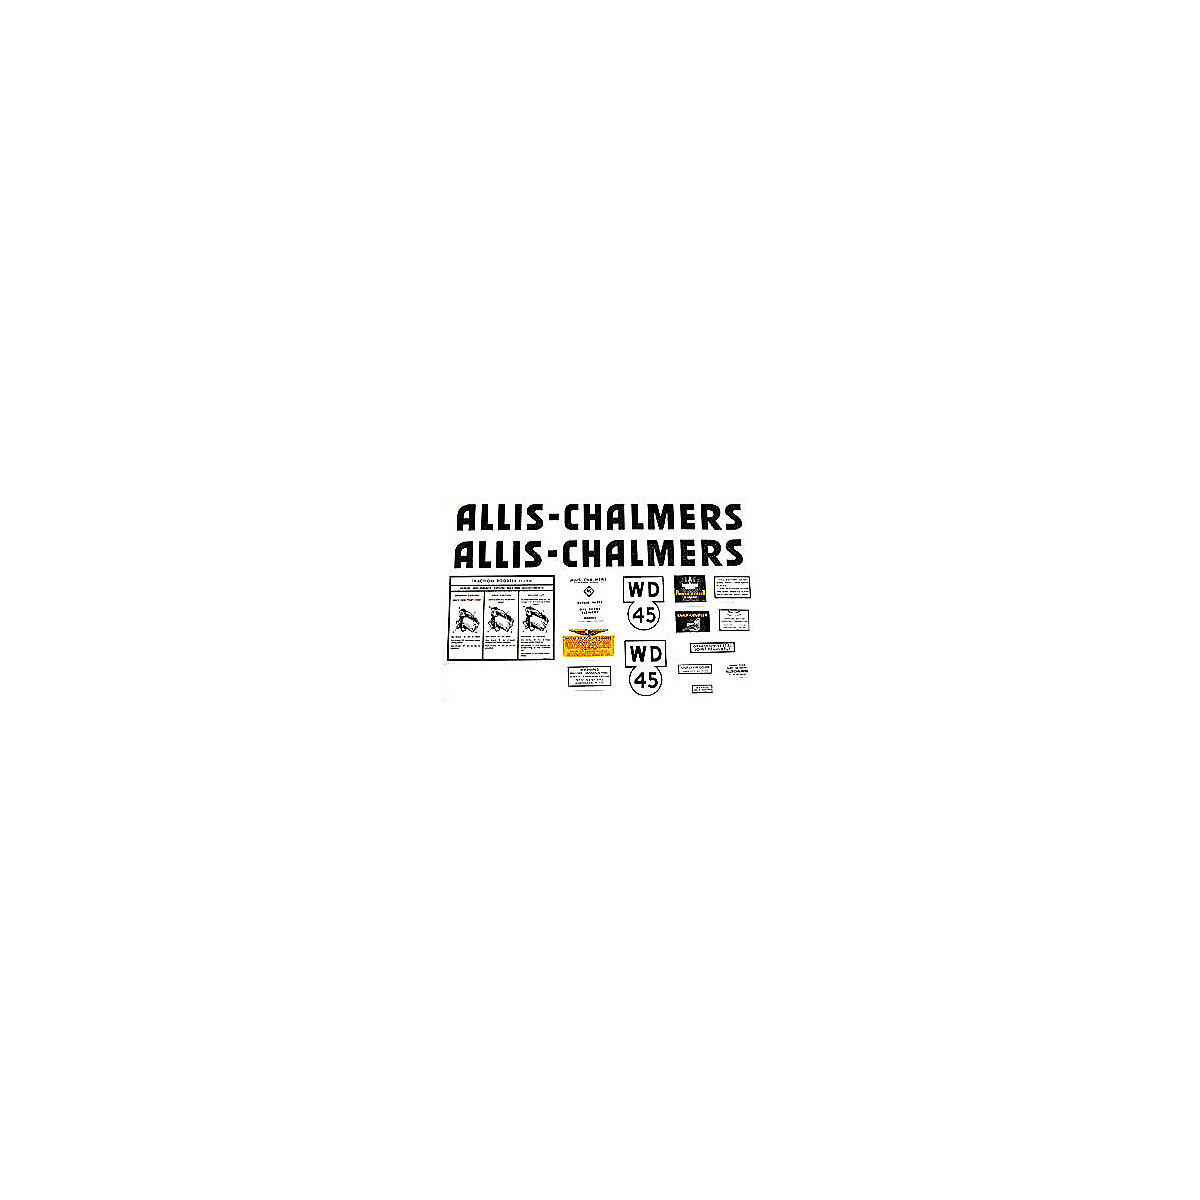 Decal Set For Allis Chalmers: WD45.